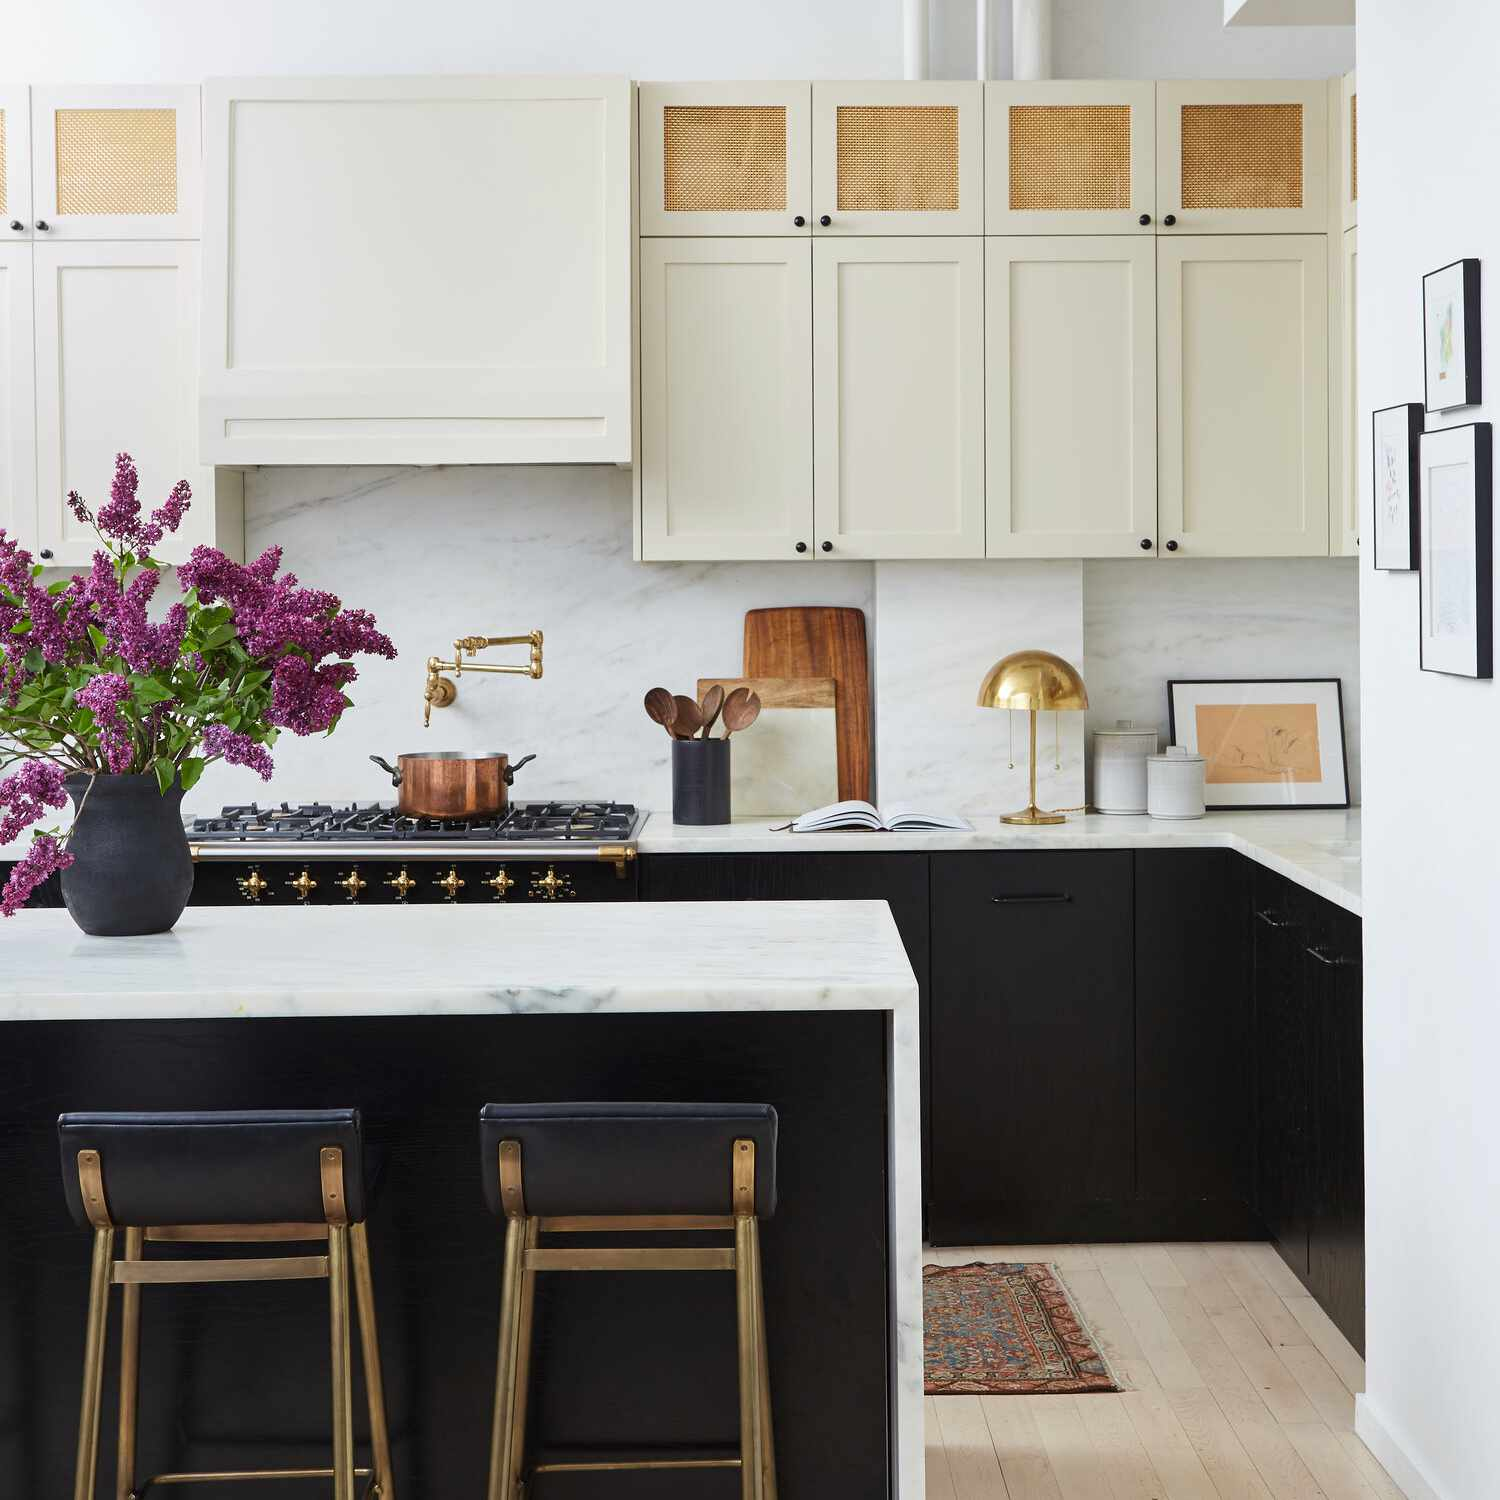 A kitchen with three different kinds of cabinets